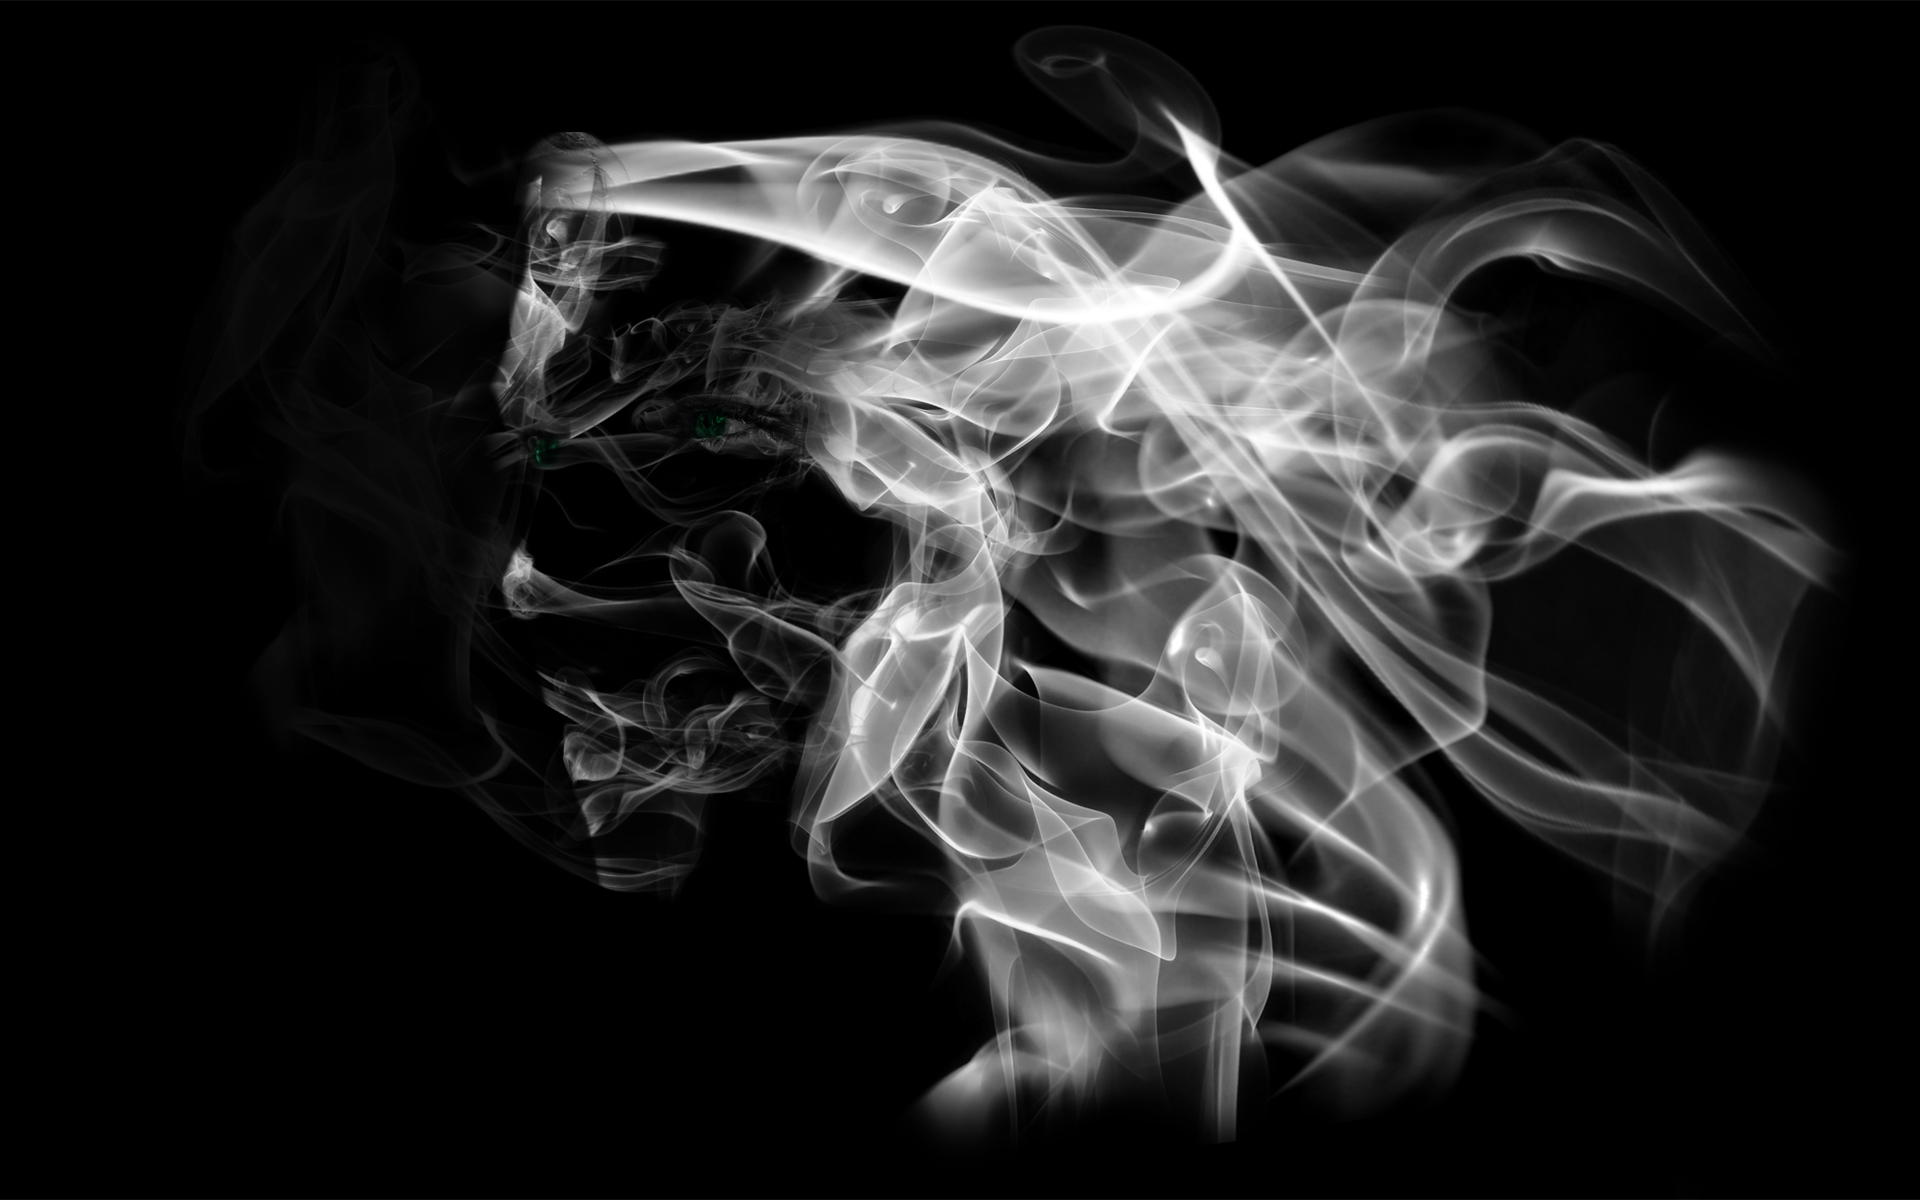 White Smoke Abstract Wallpaper HD